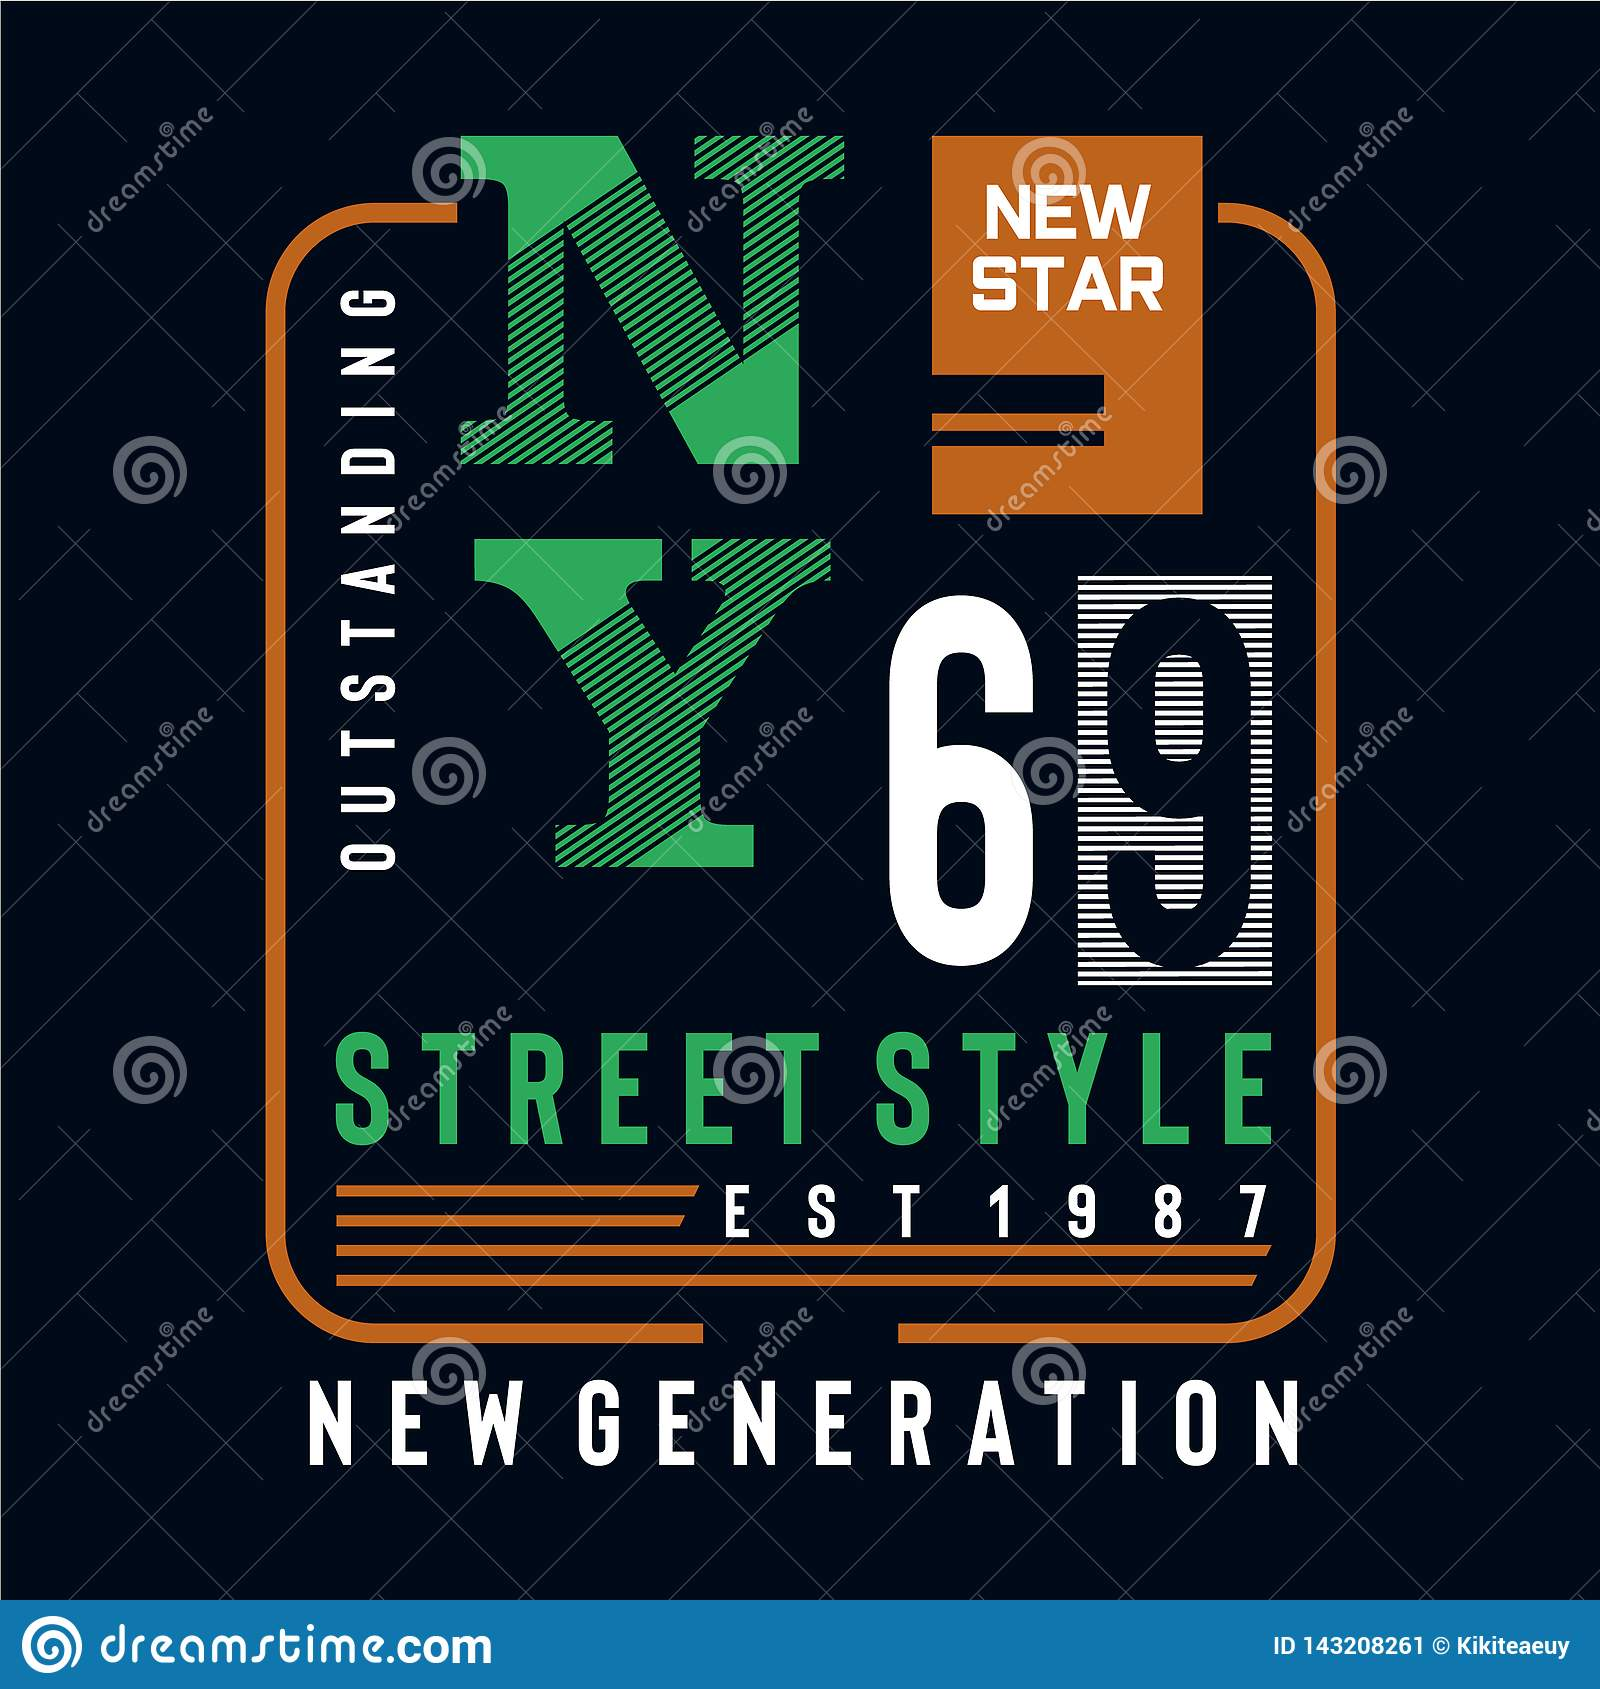 New star street style typography design tee for t shirt